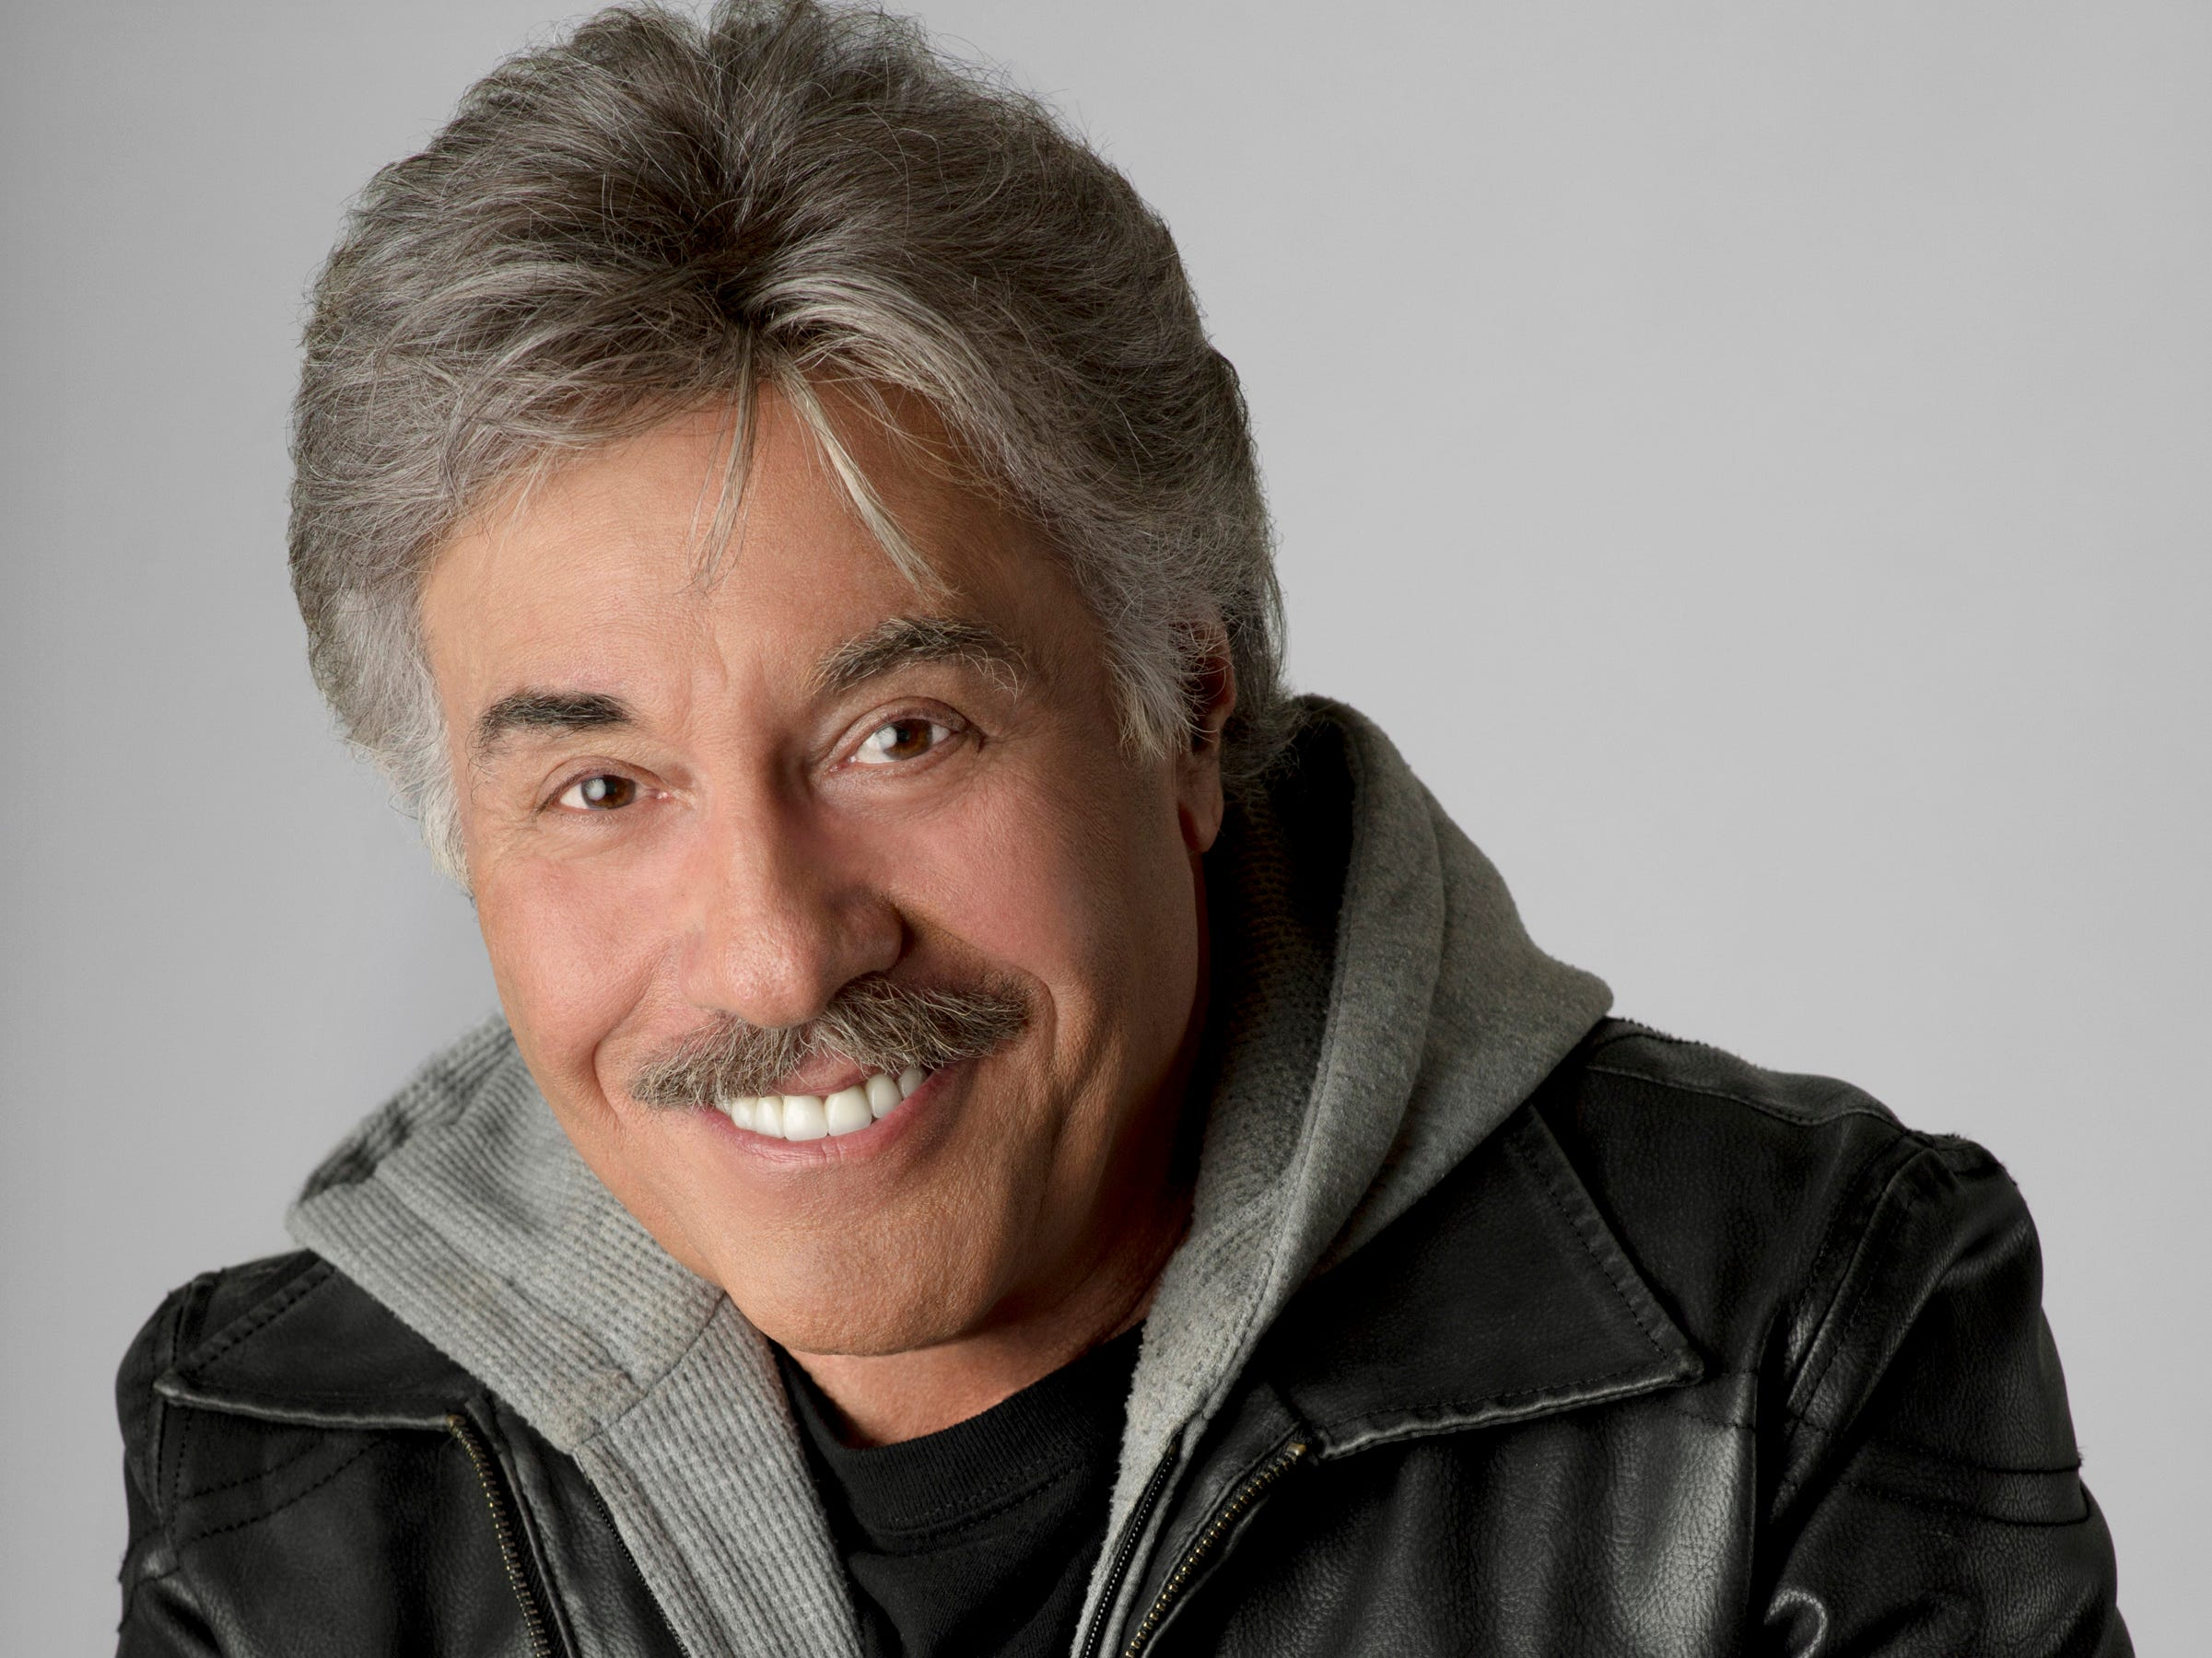 Tony Orlando has been performing since the late 1950s.